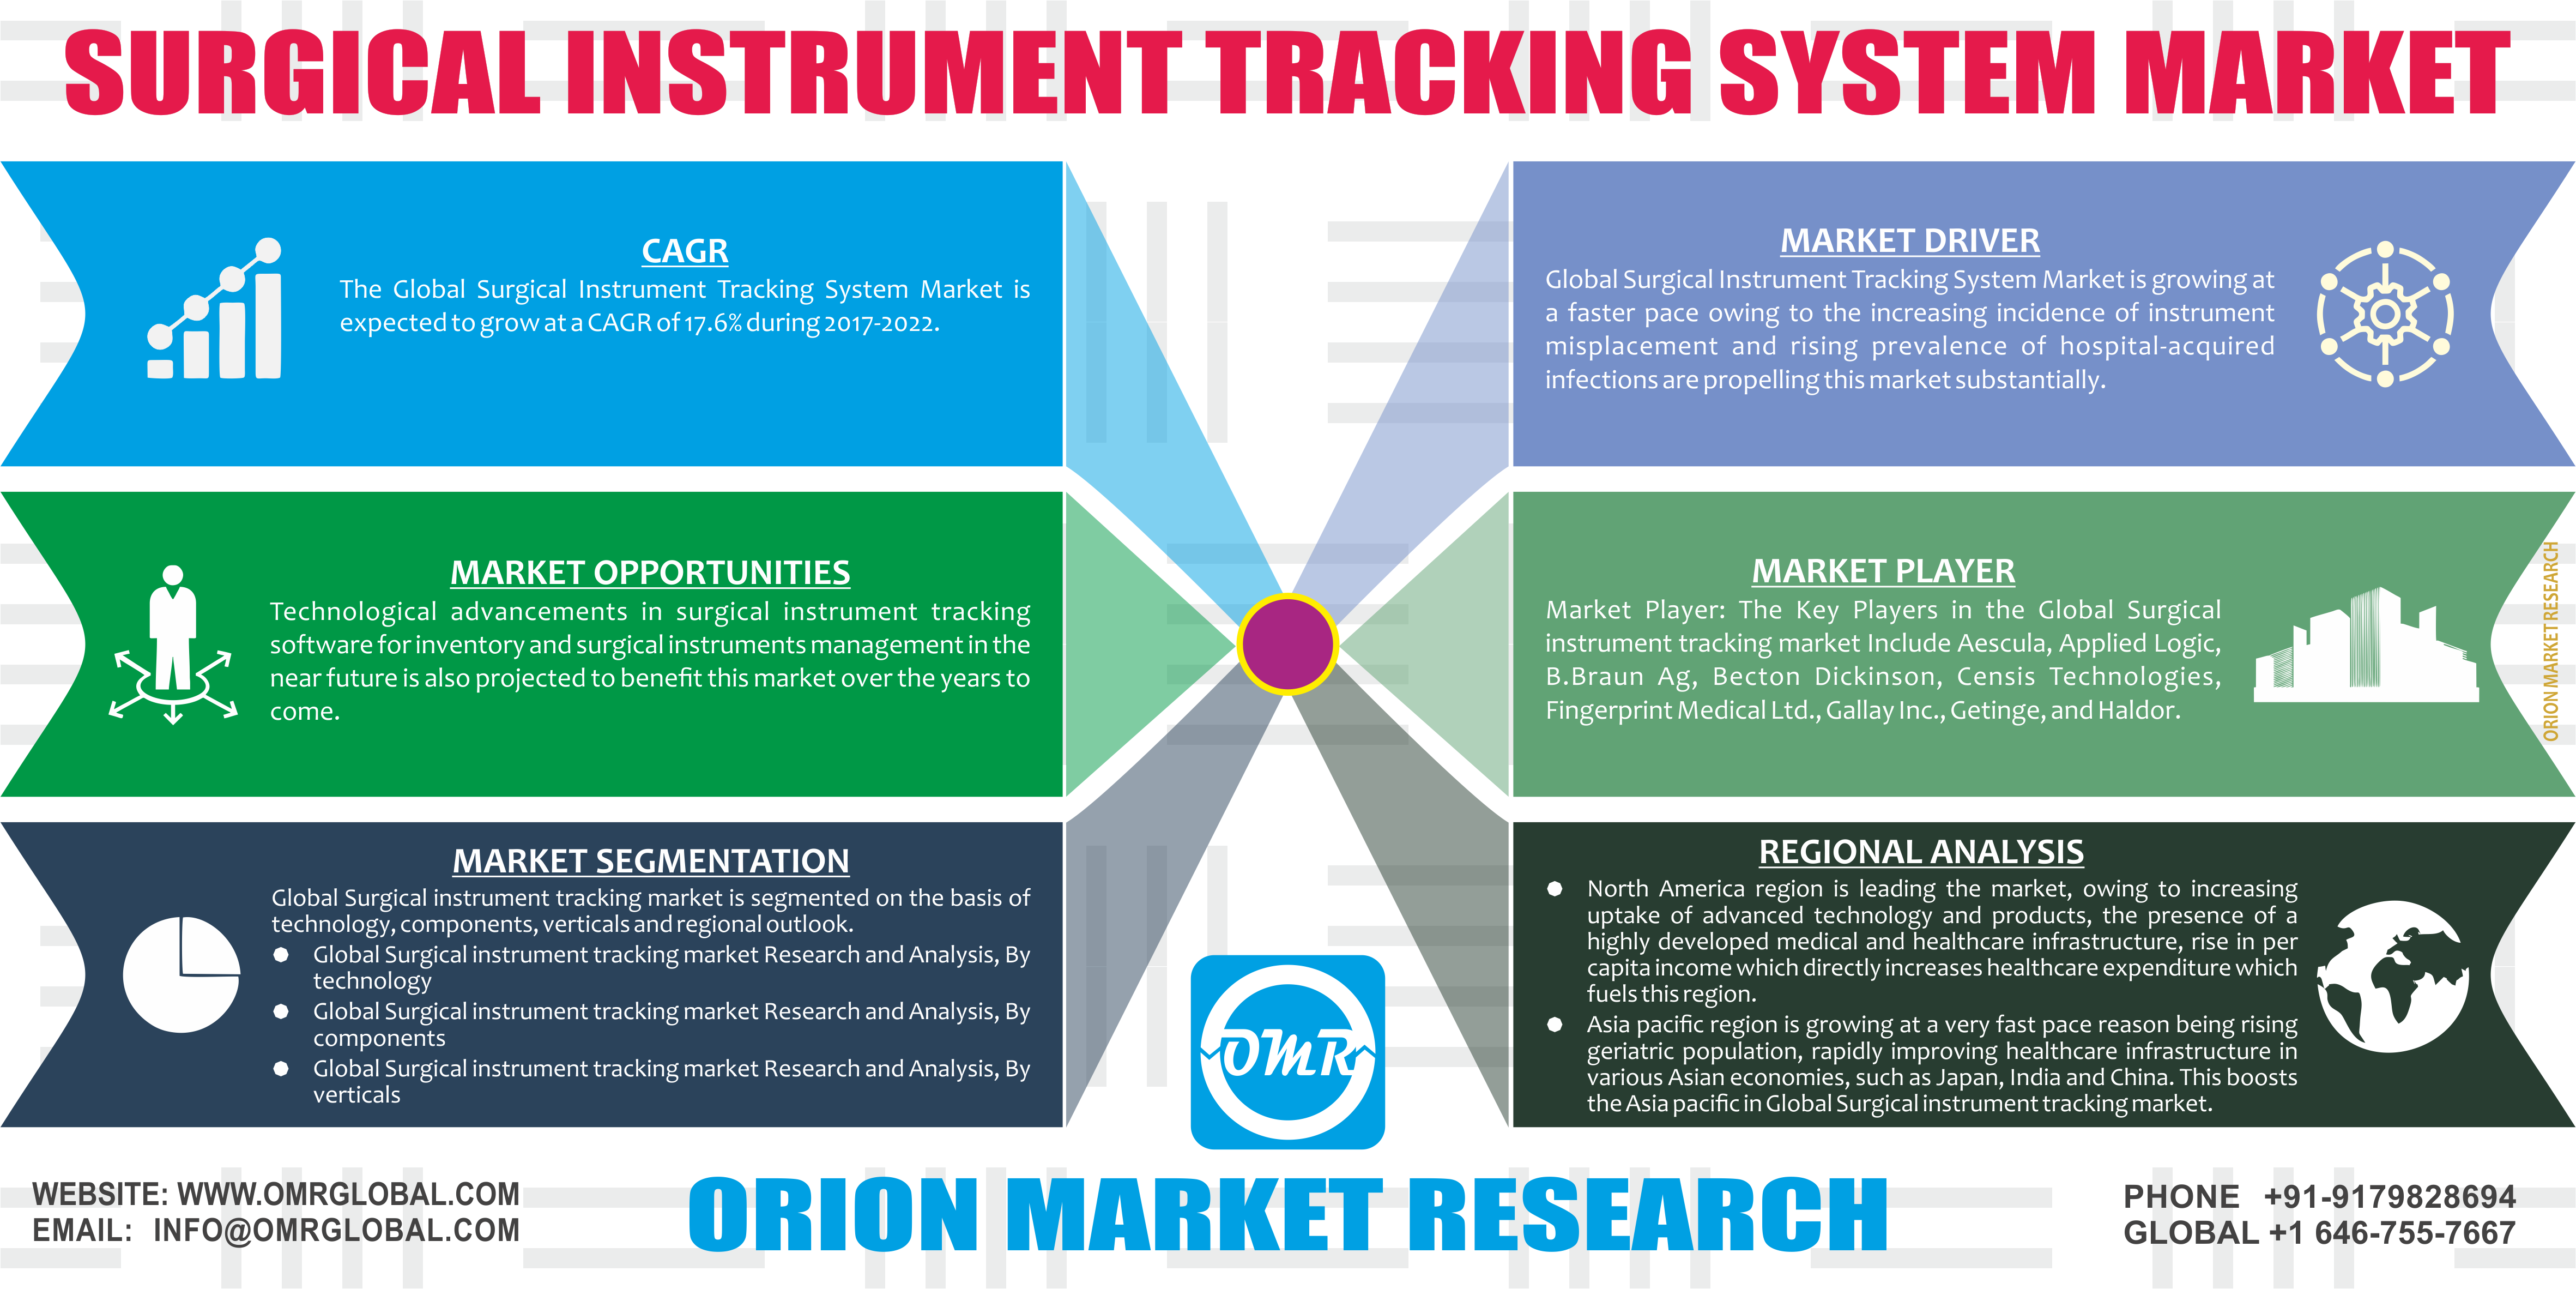 Surgical Instrument Tracking System Market Research and Analysis